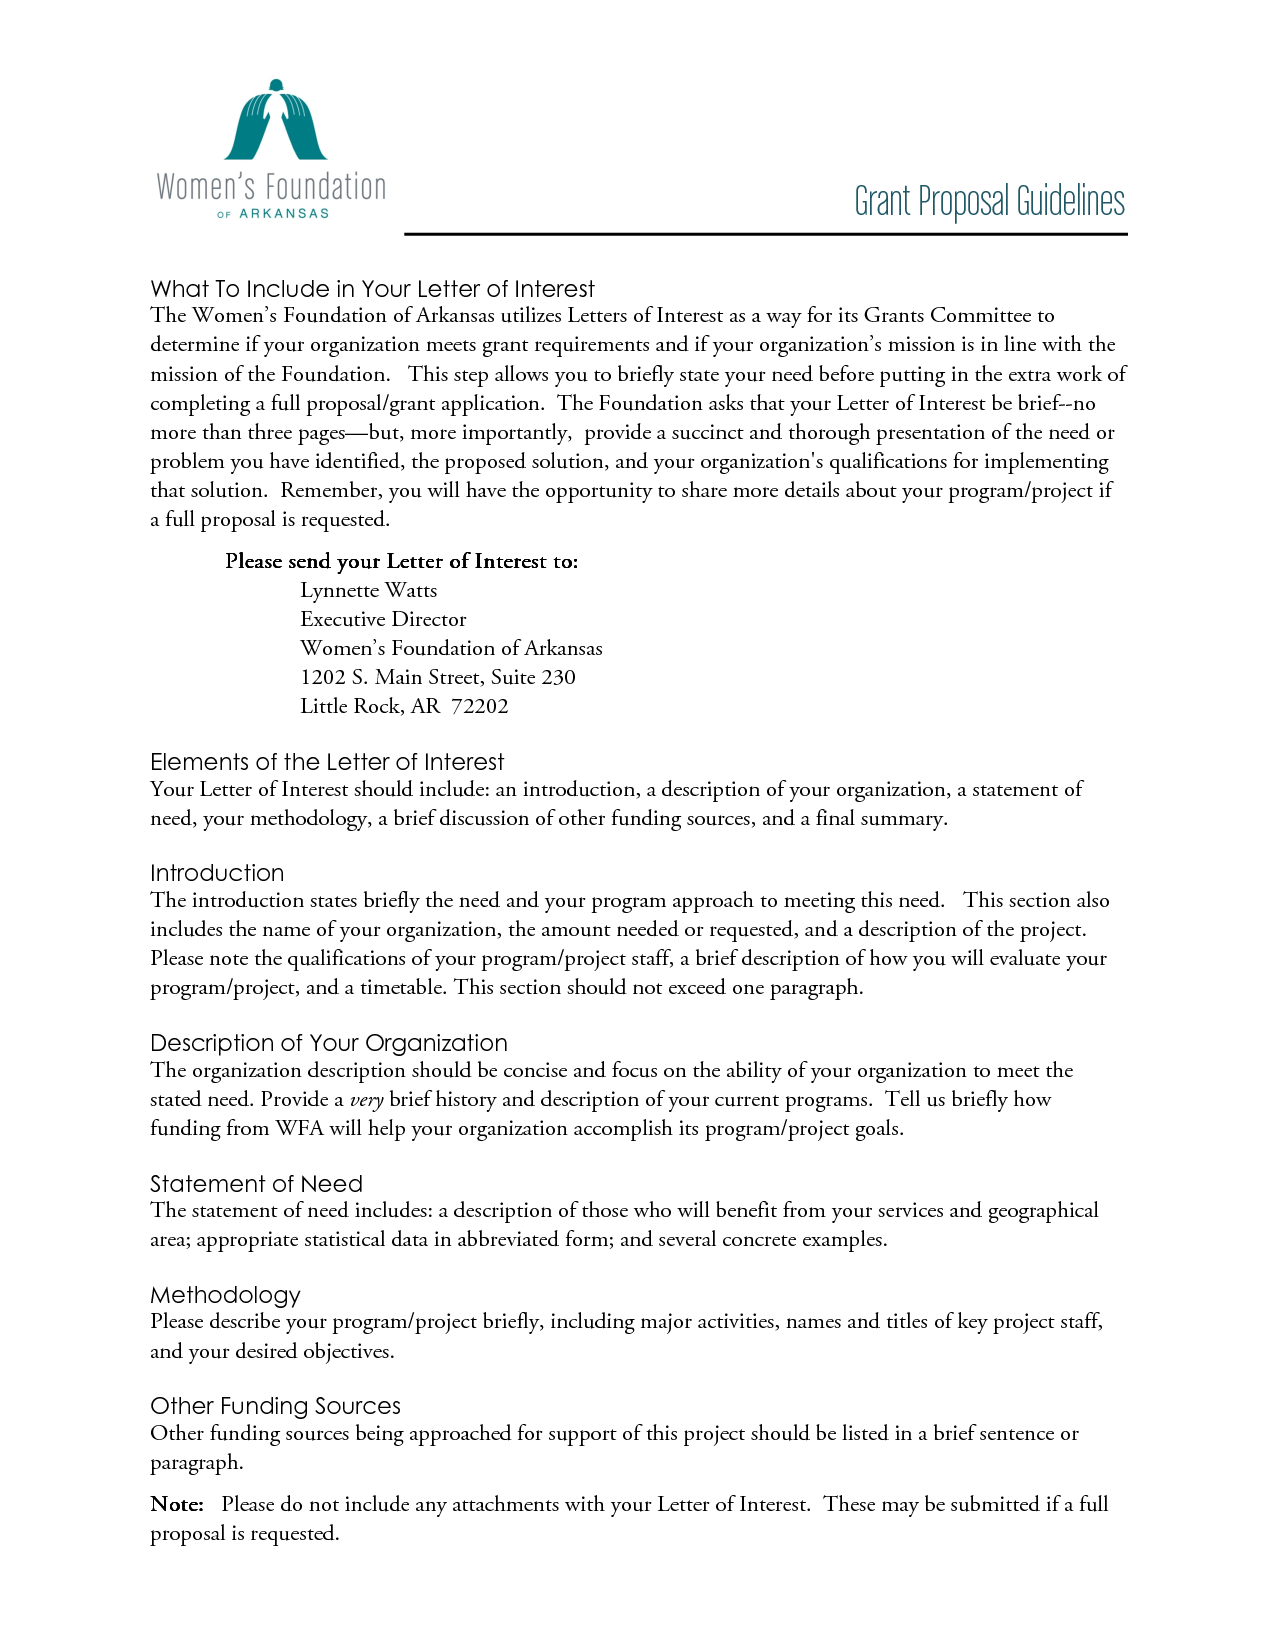 Sample Letter Of Proposal For Funding. Free Letter of Interest Templates  Grant Proposal PDF